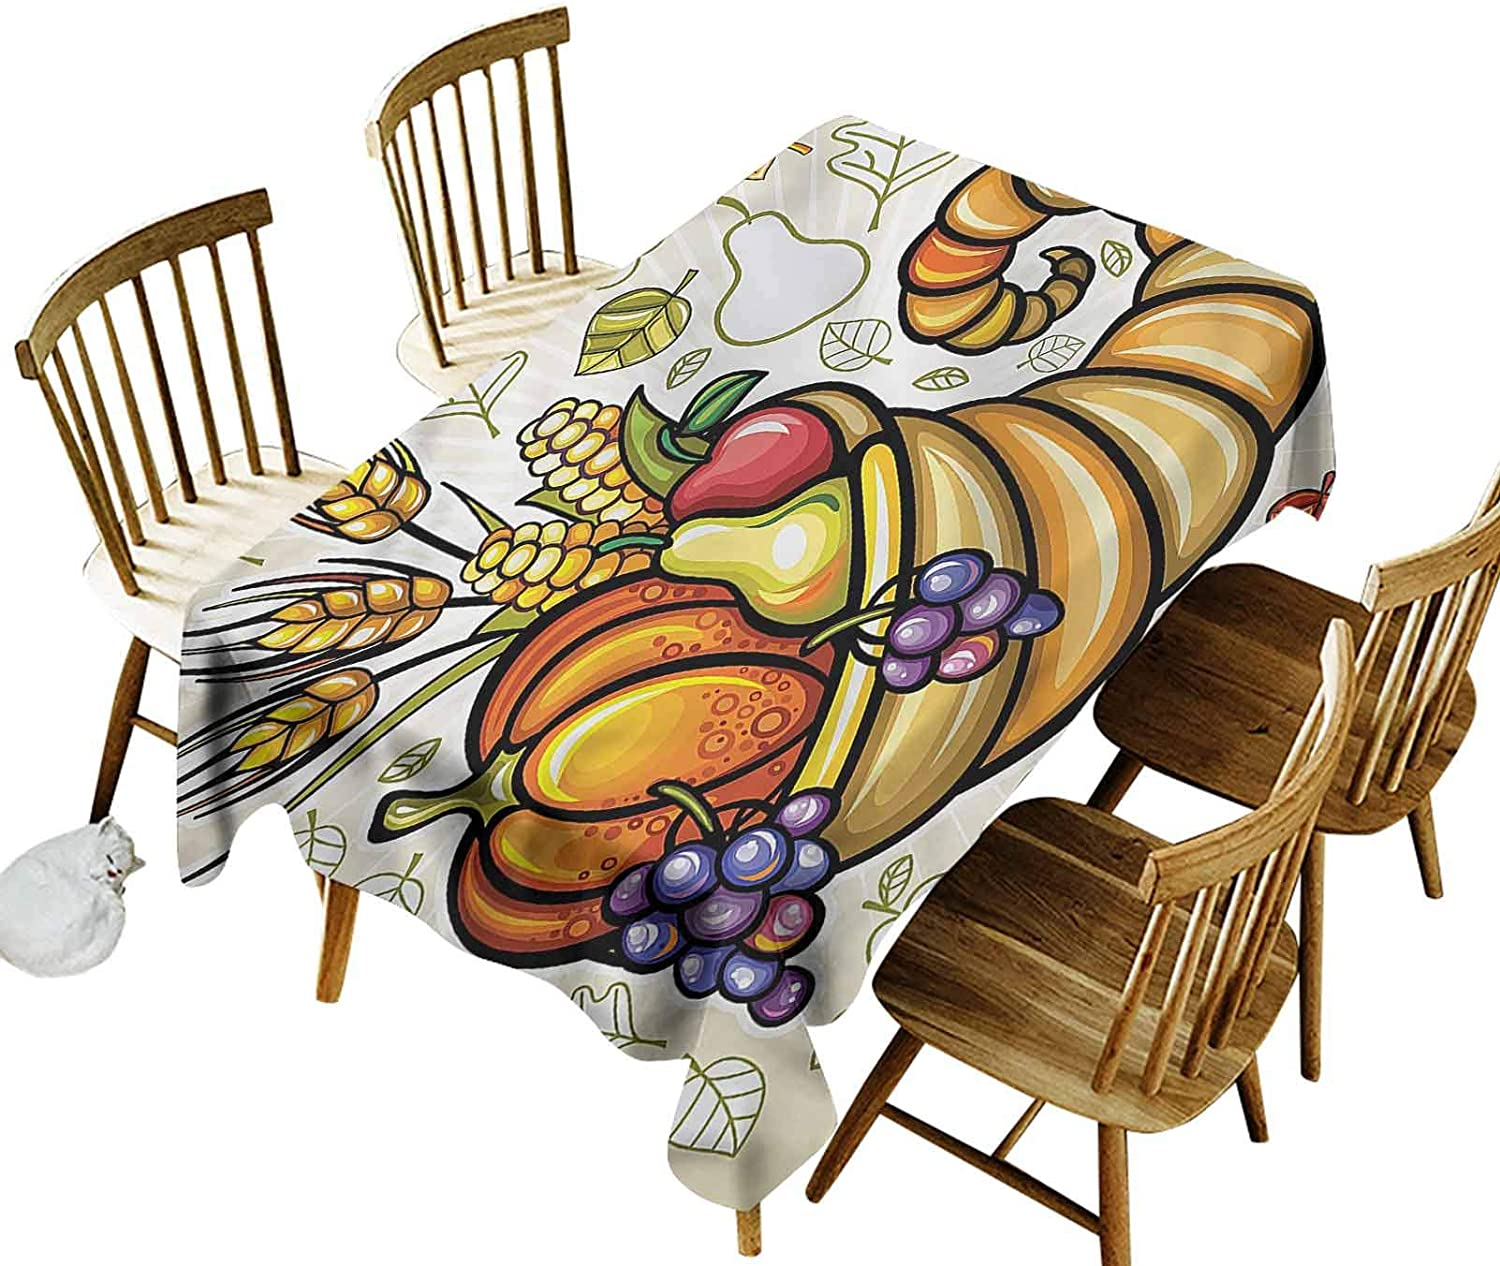 Harvest Birthday Tablecloth Cornucopia Theme Food Printed Tablecloth 60 x 90 Inch